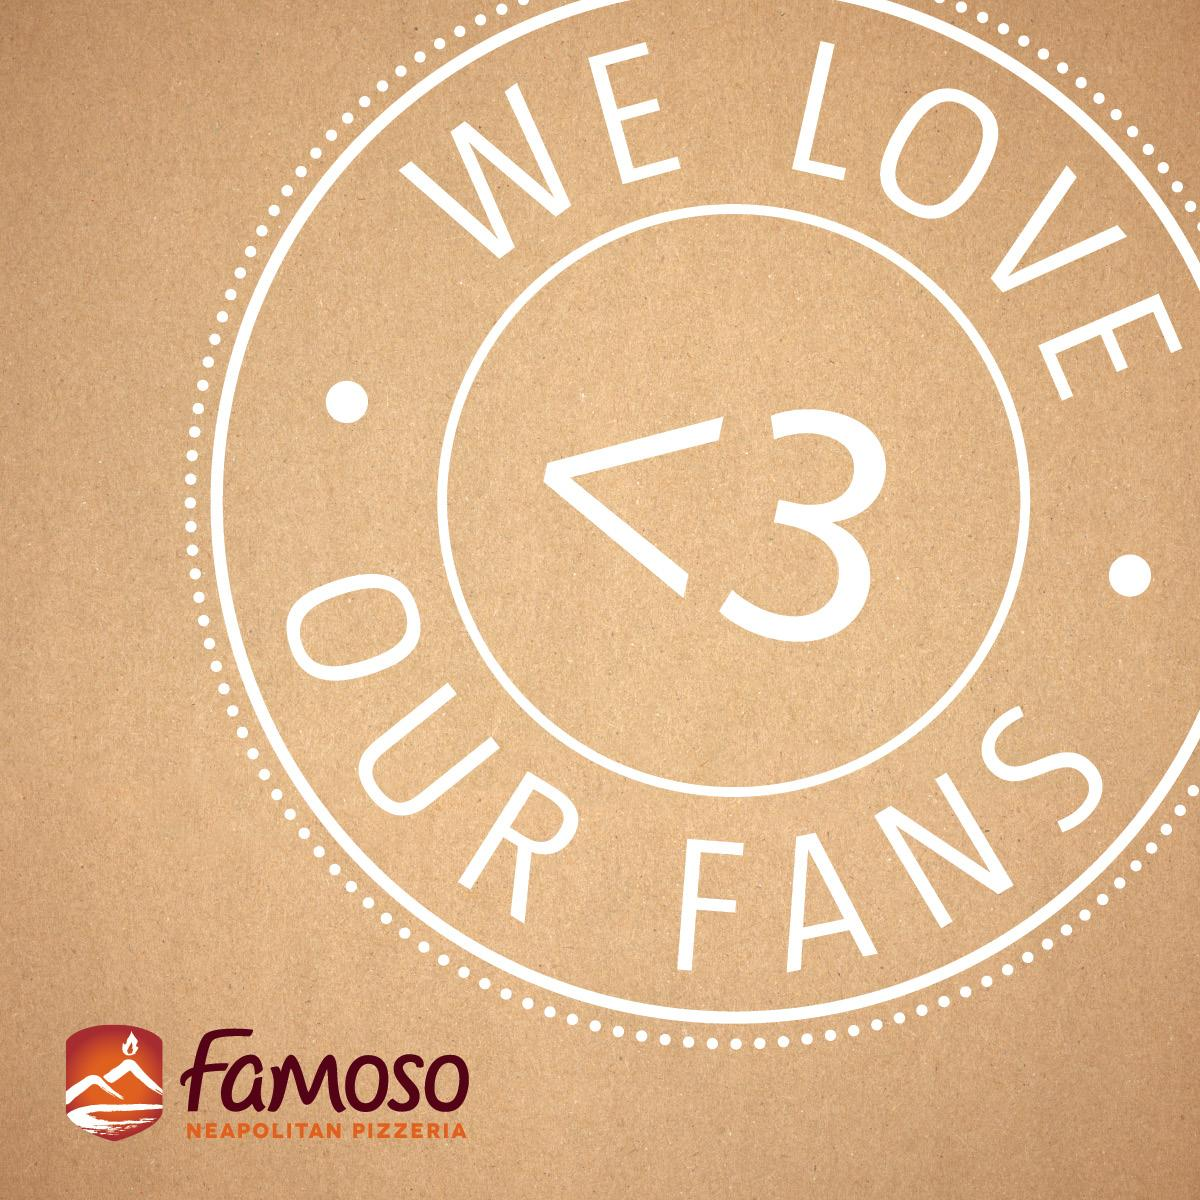 We love sharing the #famosolove with you. RT to share it with your friends too. Win a $25 GC: https://t.co/ZEyaPuJ4bY http://t.co/Ql3S9T6TyW